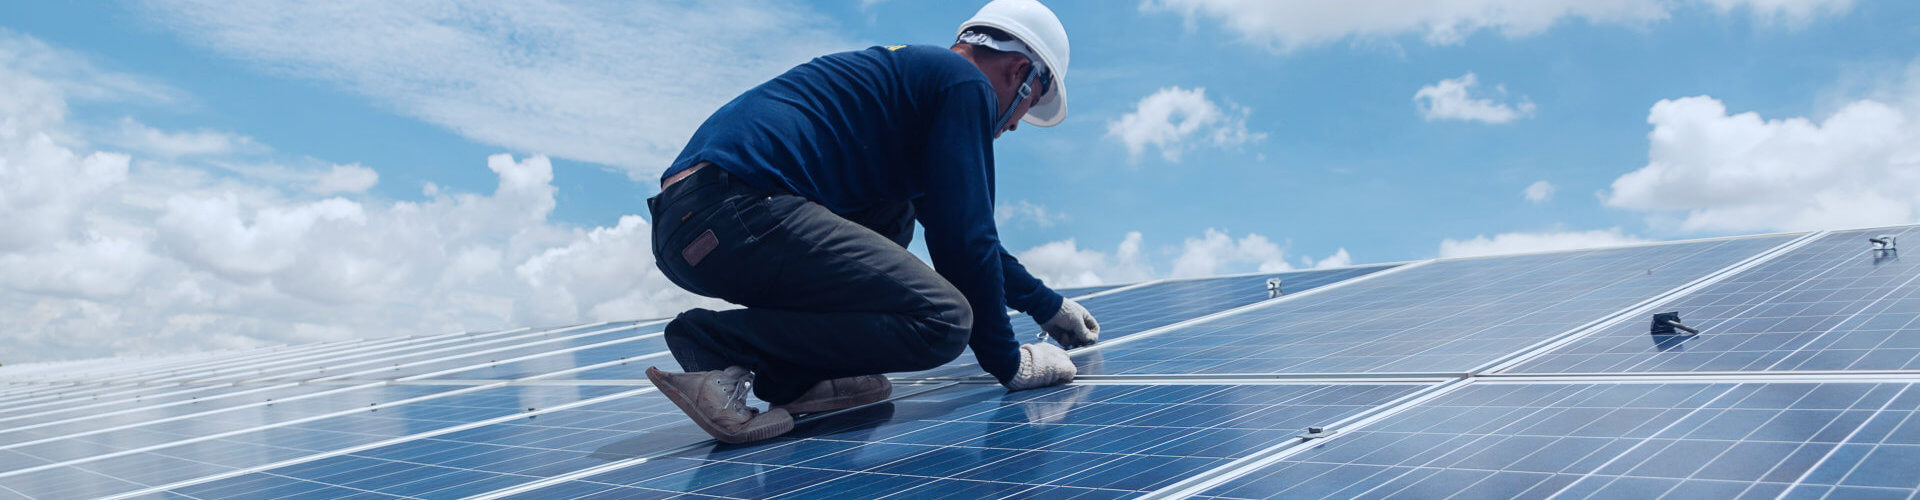 a person working with solar panels